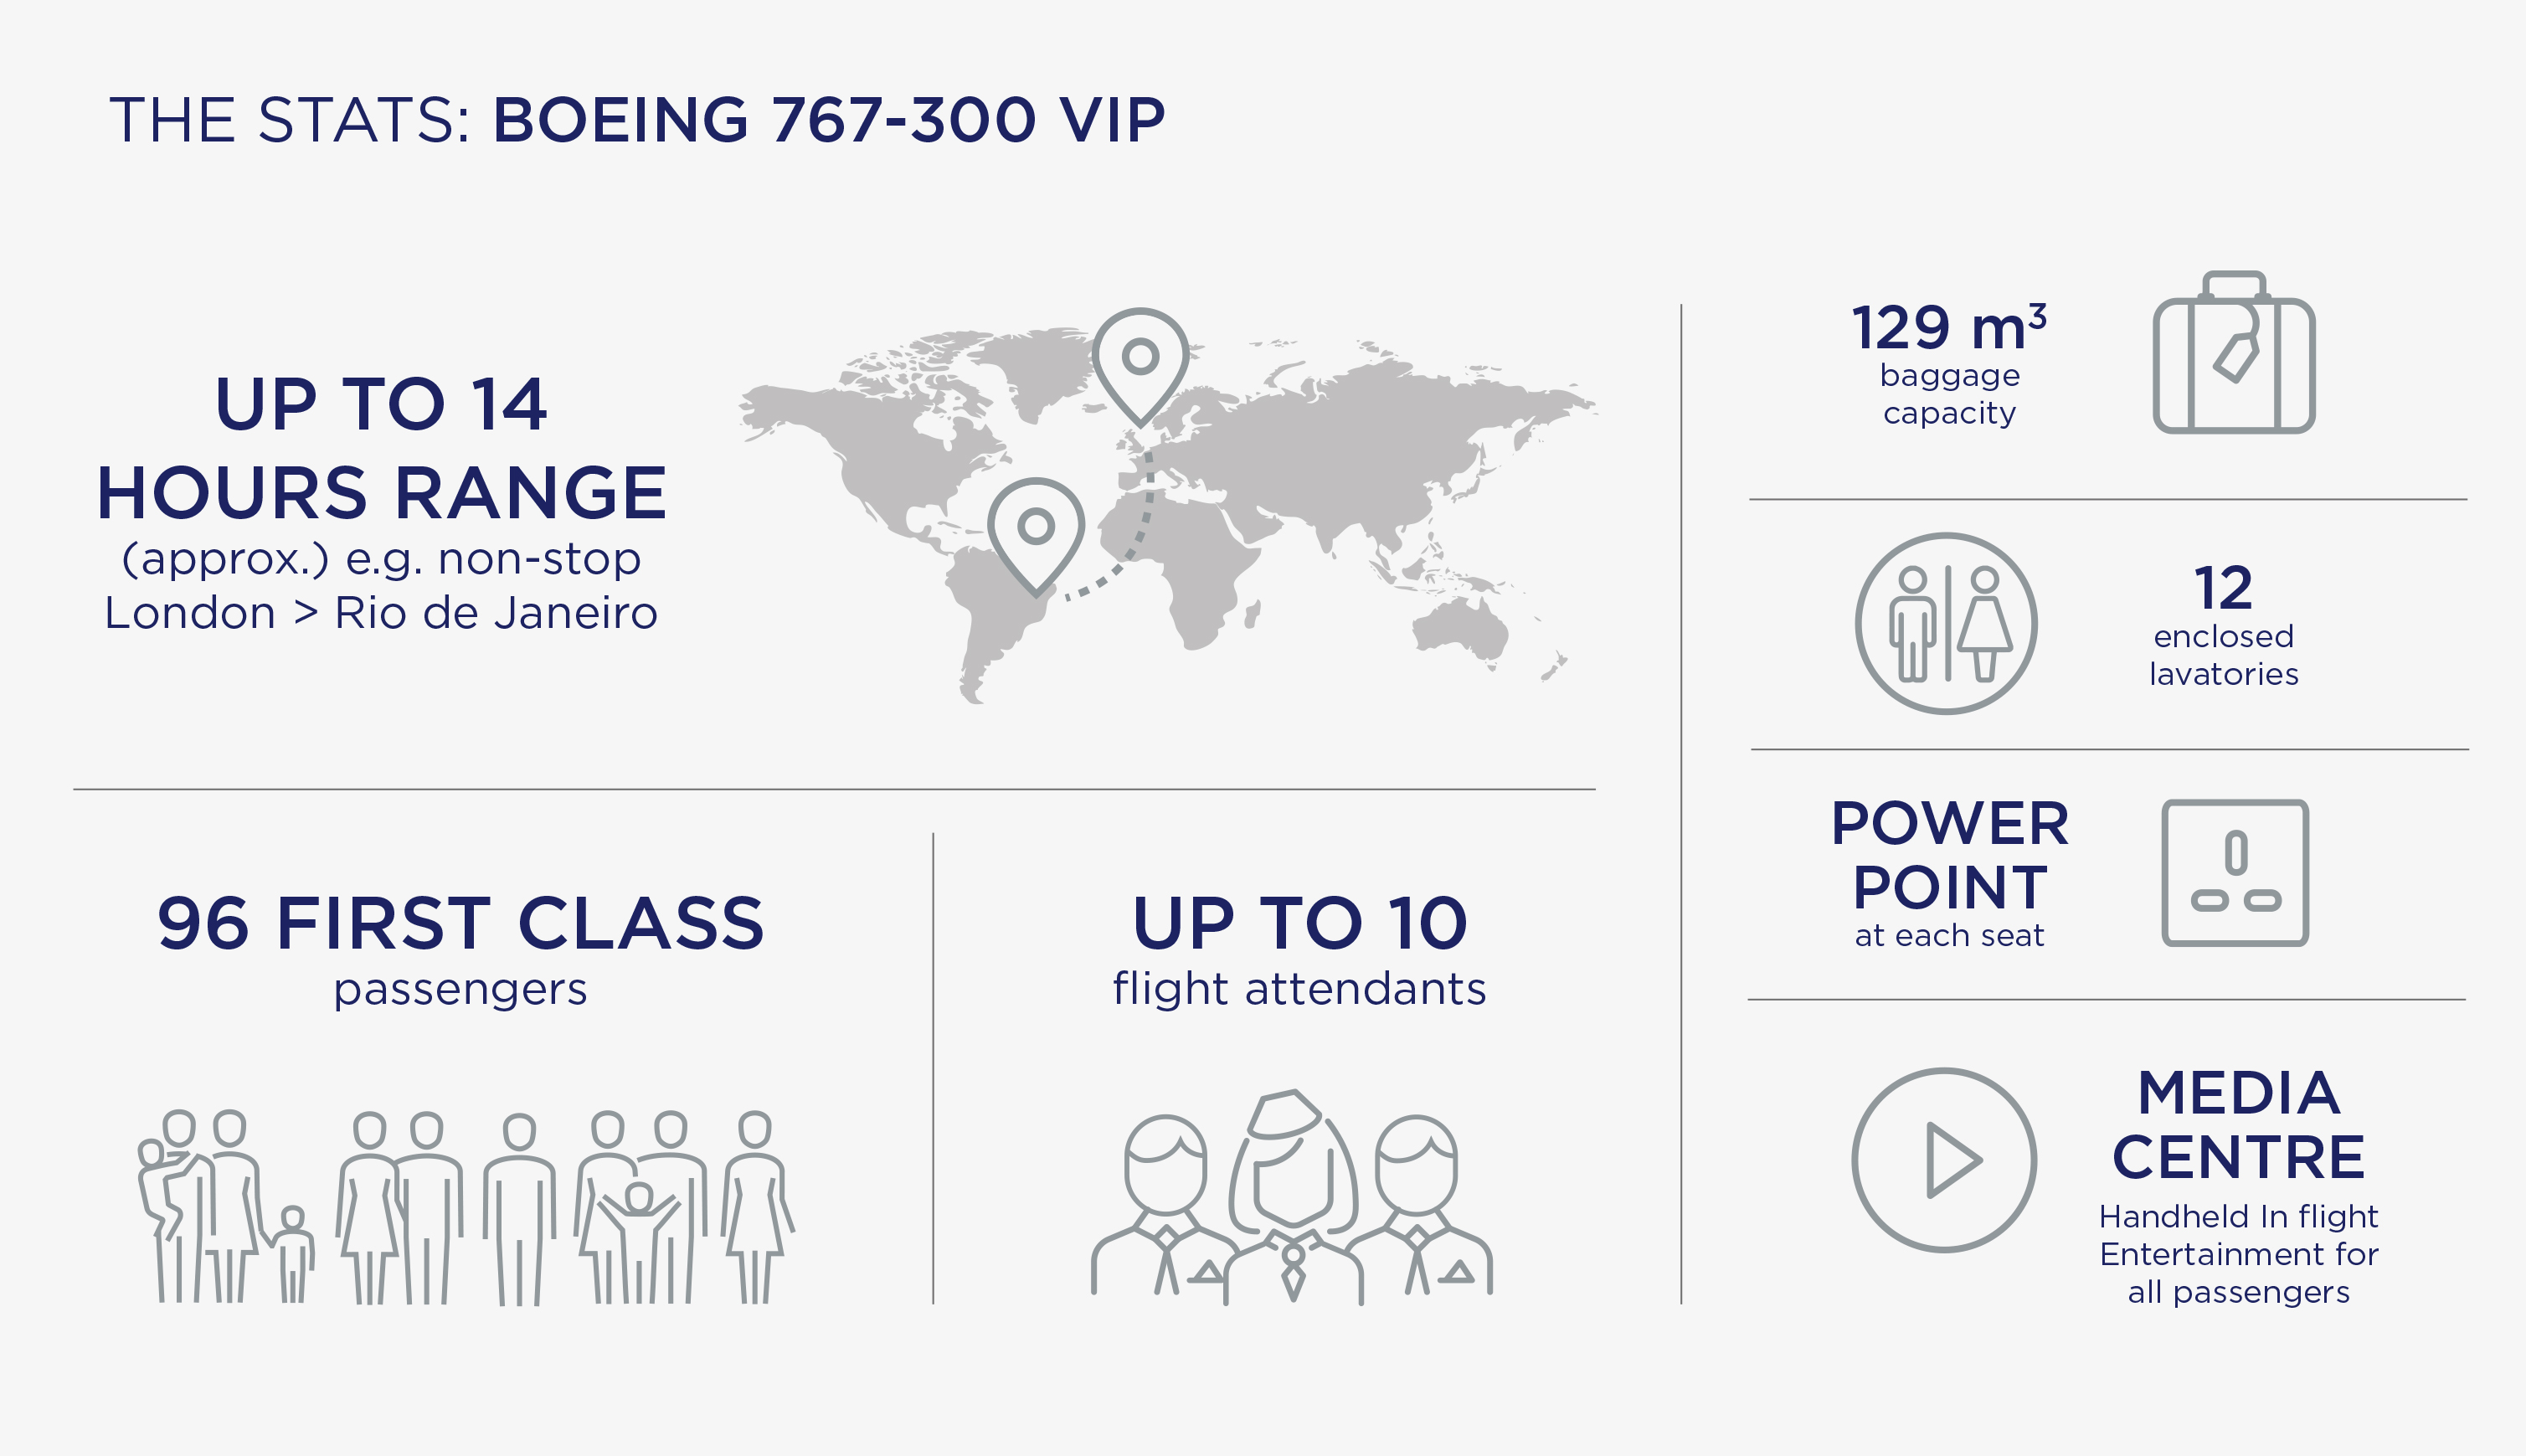 VIP Boeing 767-300 Graphic